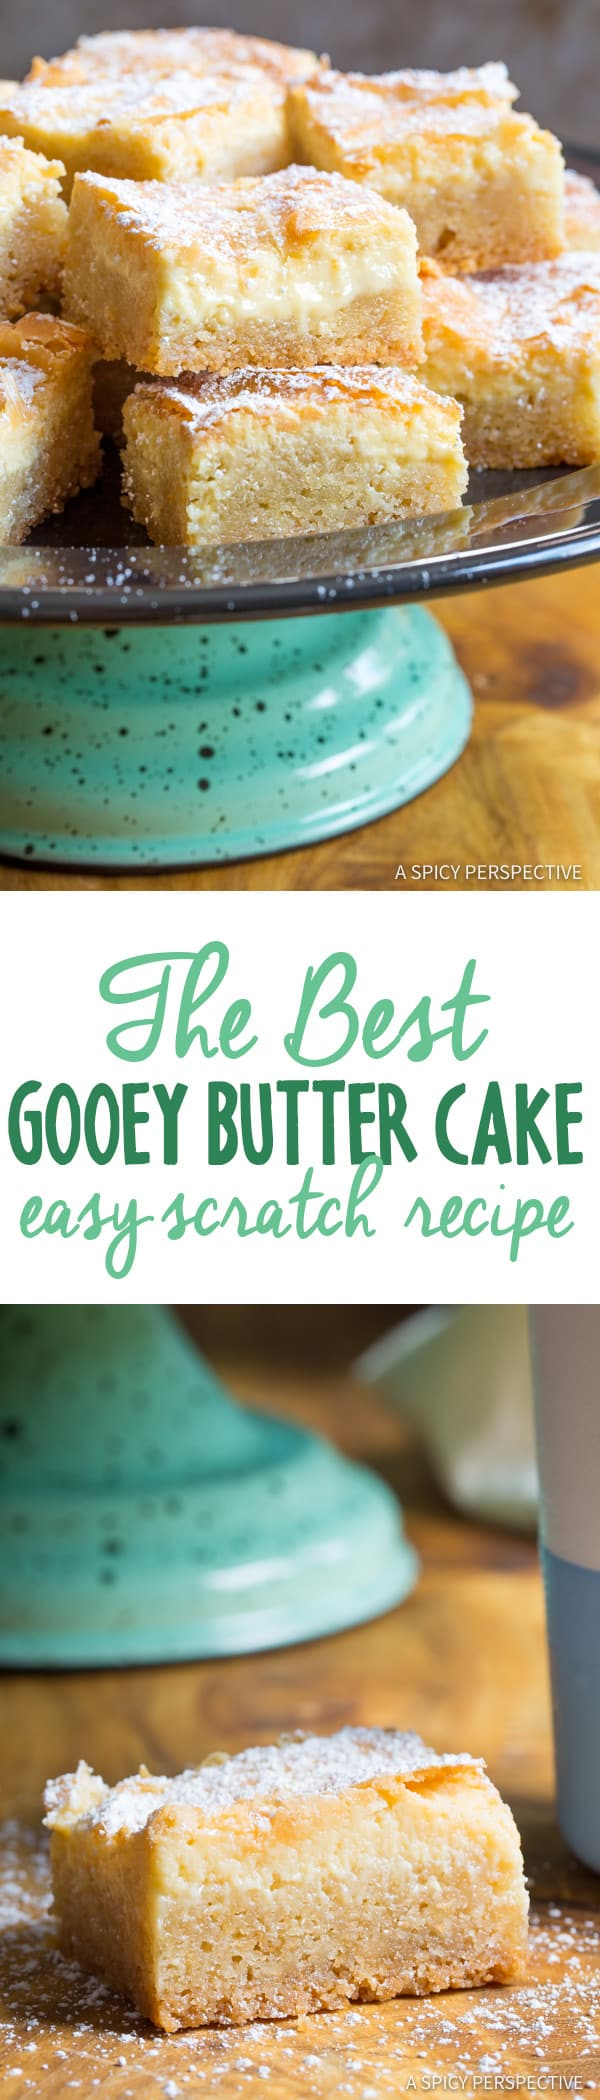 Say hello to The Best Gooey Butter Cake Recipe (From Scratch) we've ...